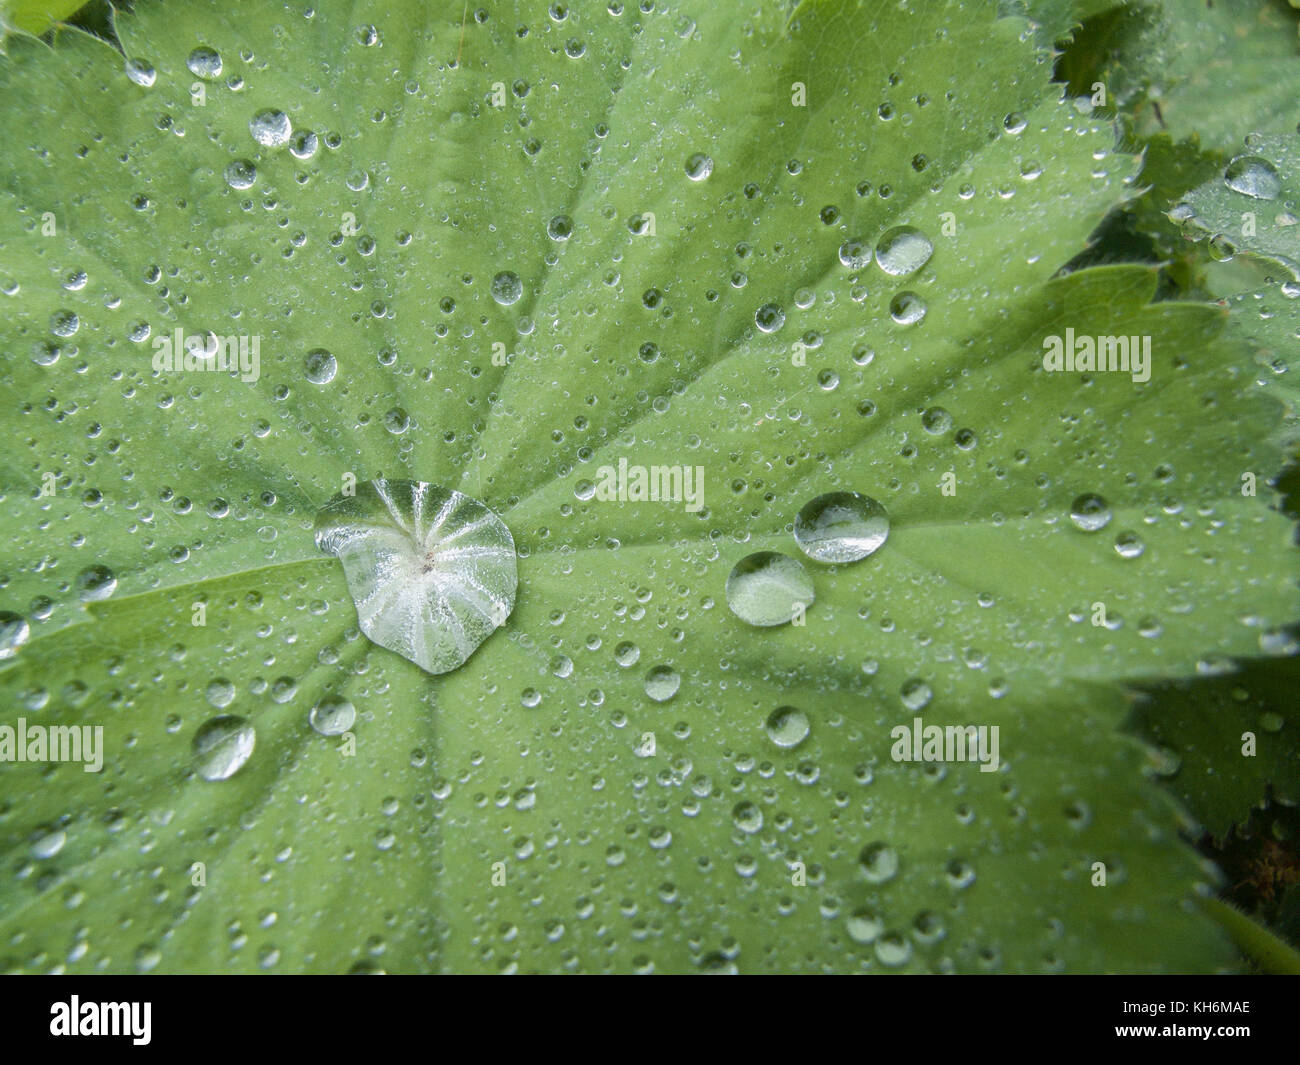 Water drops on the leaf of Lady's Mantle (Alchemilla vulgaris). - Stock Image